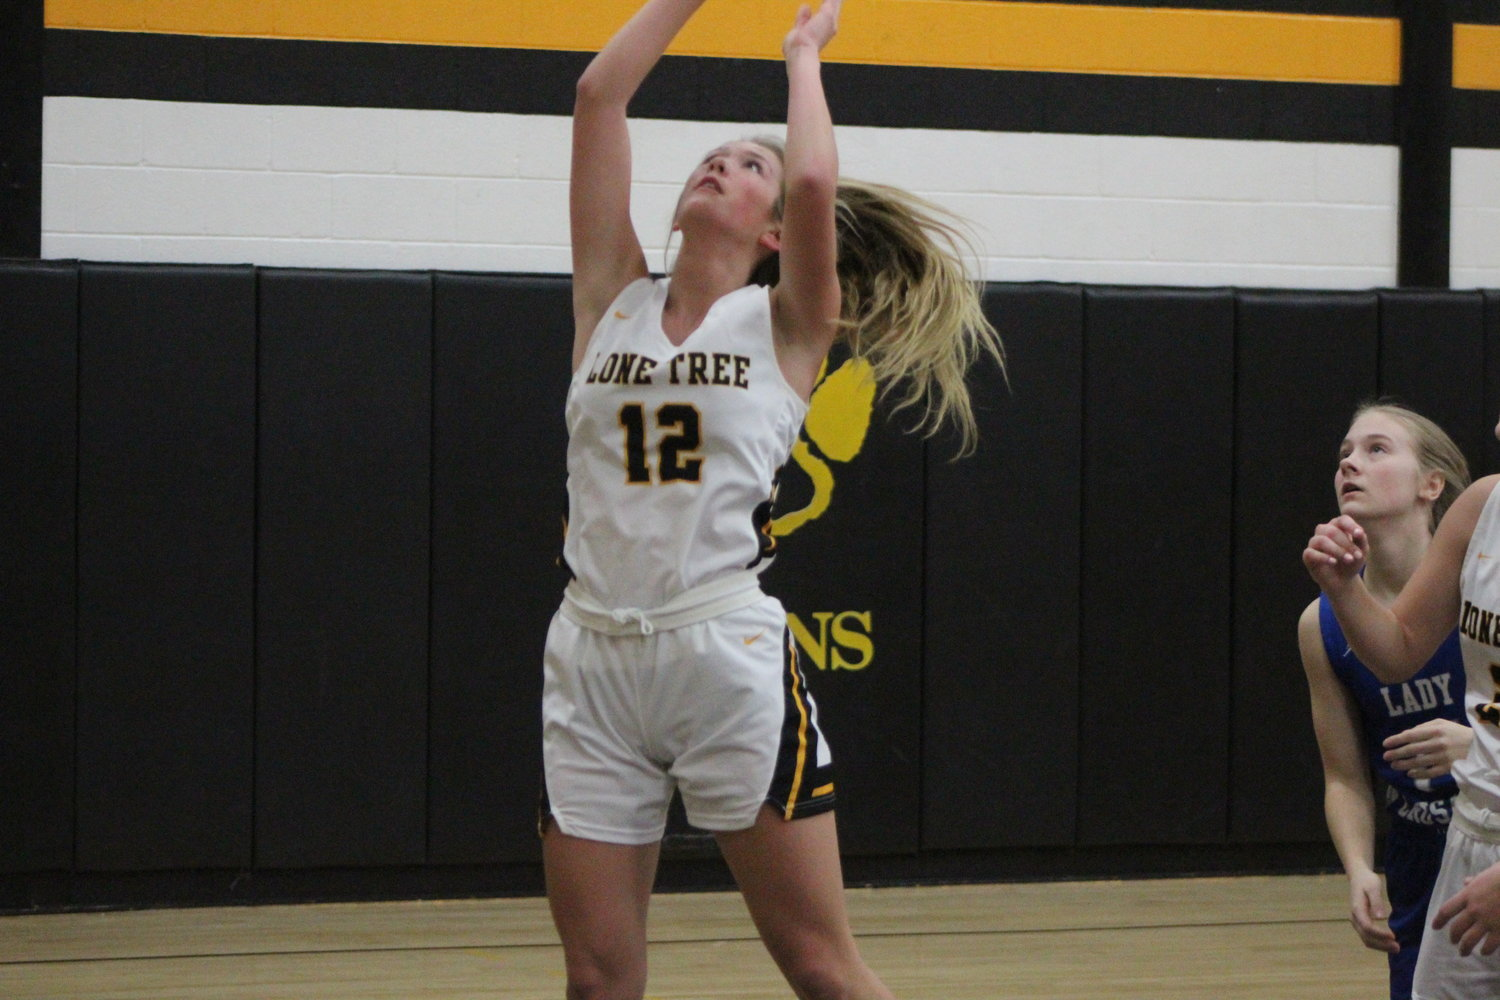 Josie Mullinnix goes up for a lay-up. Lone Tree topped the Crusaders in a hard-fought game, 59-52.